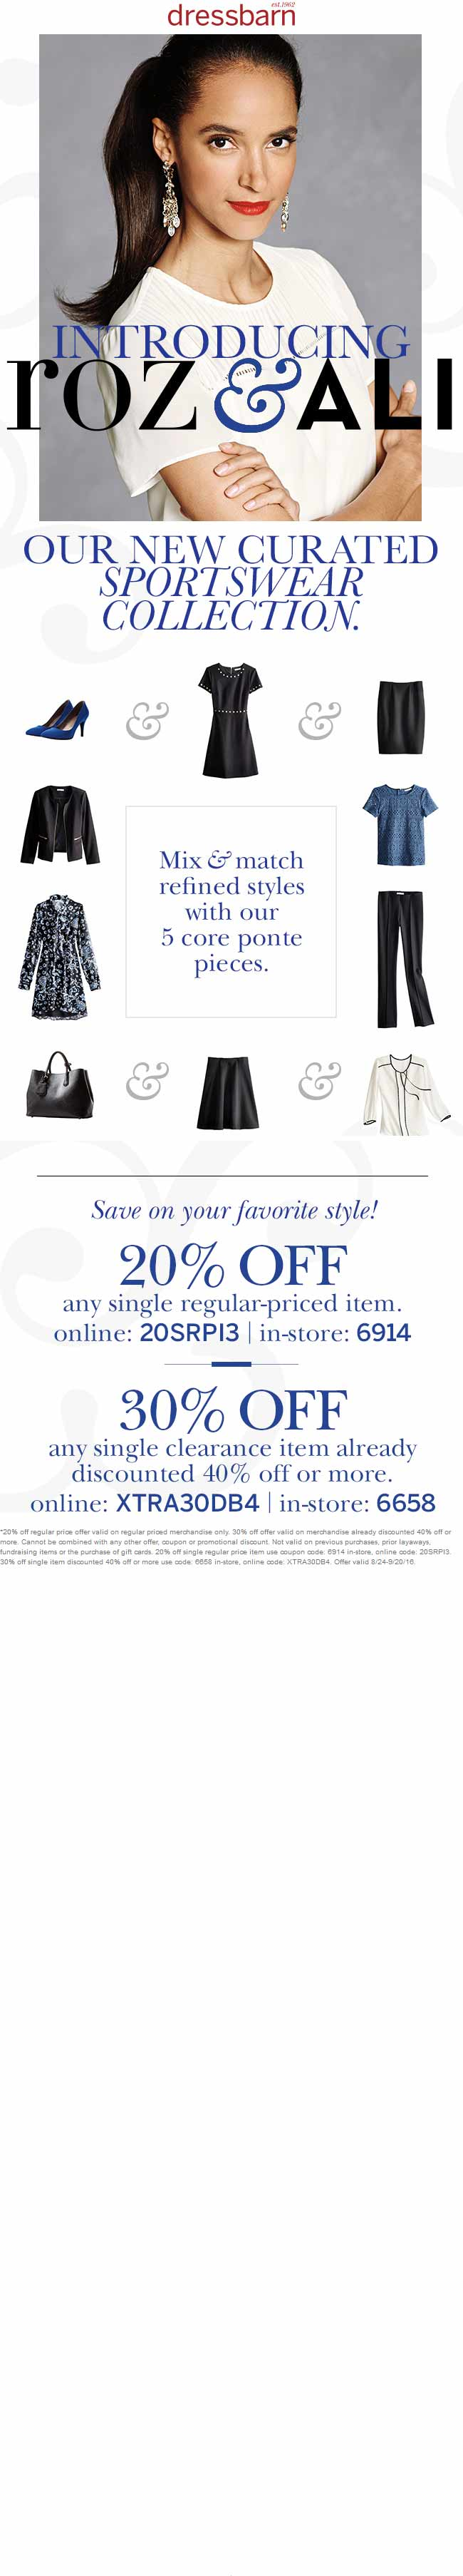 Dressbarn Coupon March 2018 20-30% off at Dressbarn, or online via promo code 20SRP13